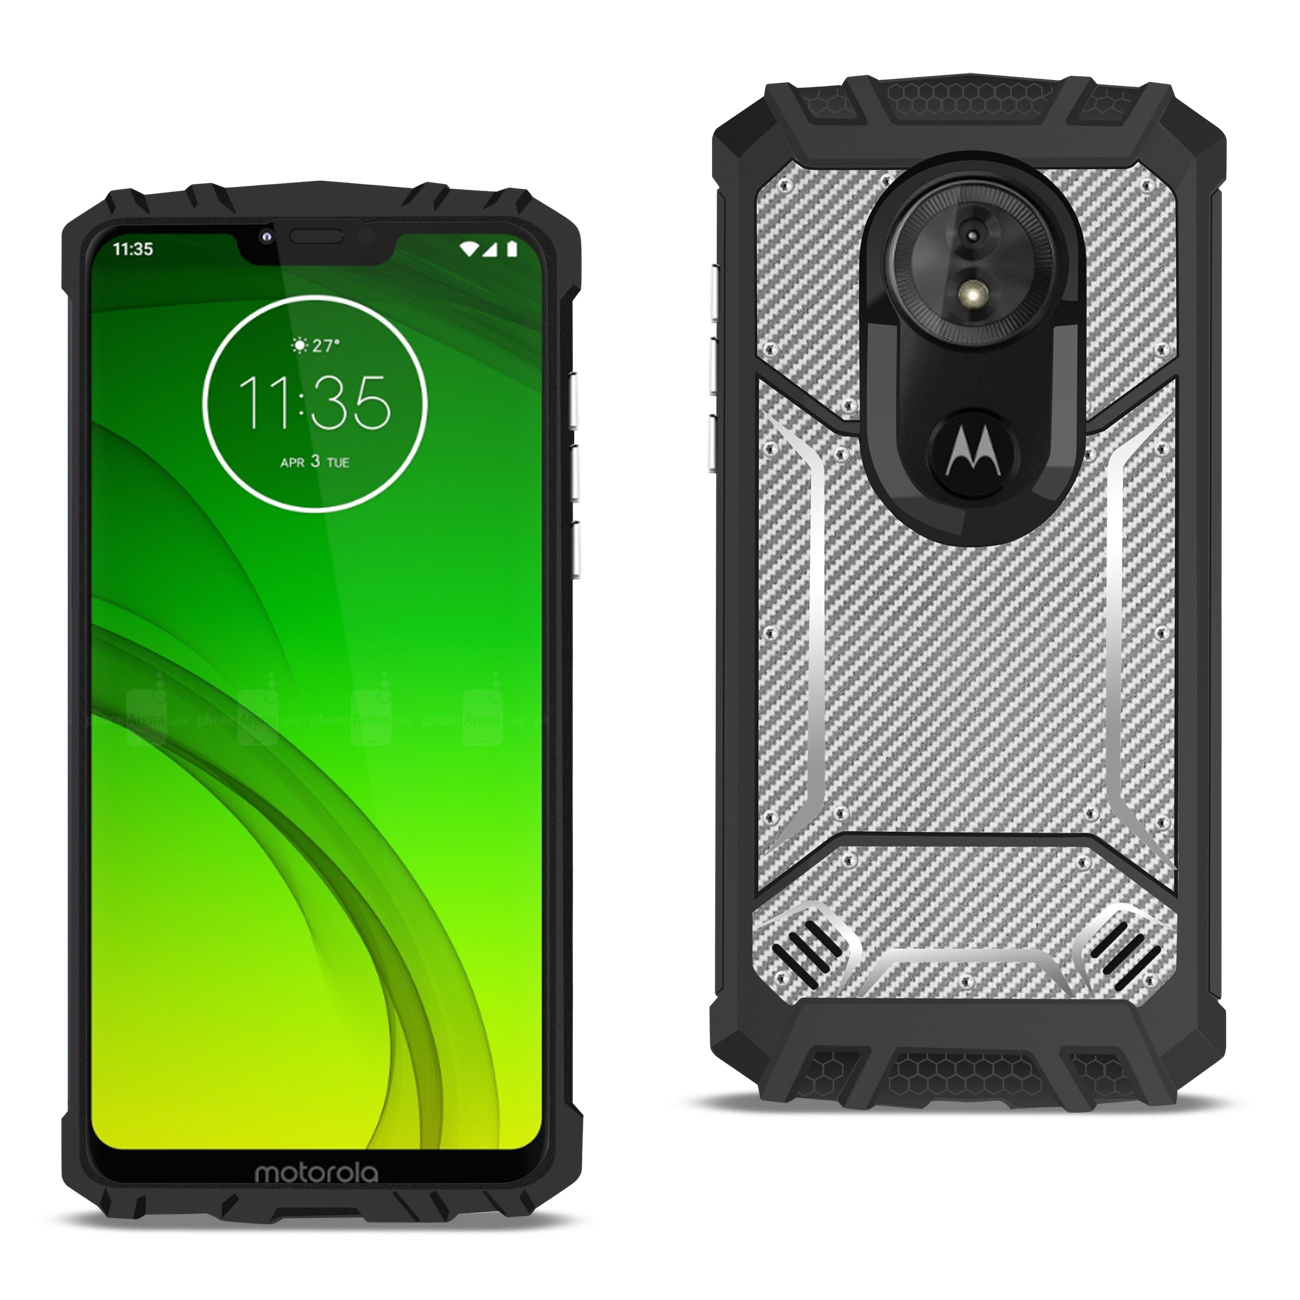 MOTOROLA MOTO G7 POWER_Carbon Fiber Hard-shell Case In Gray